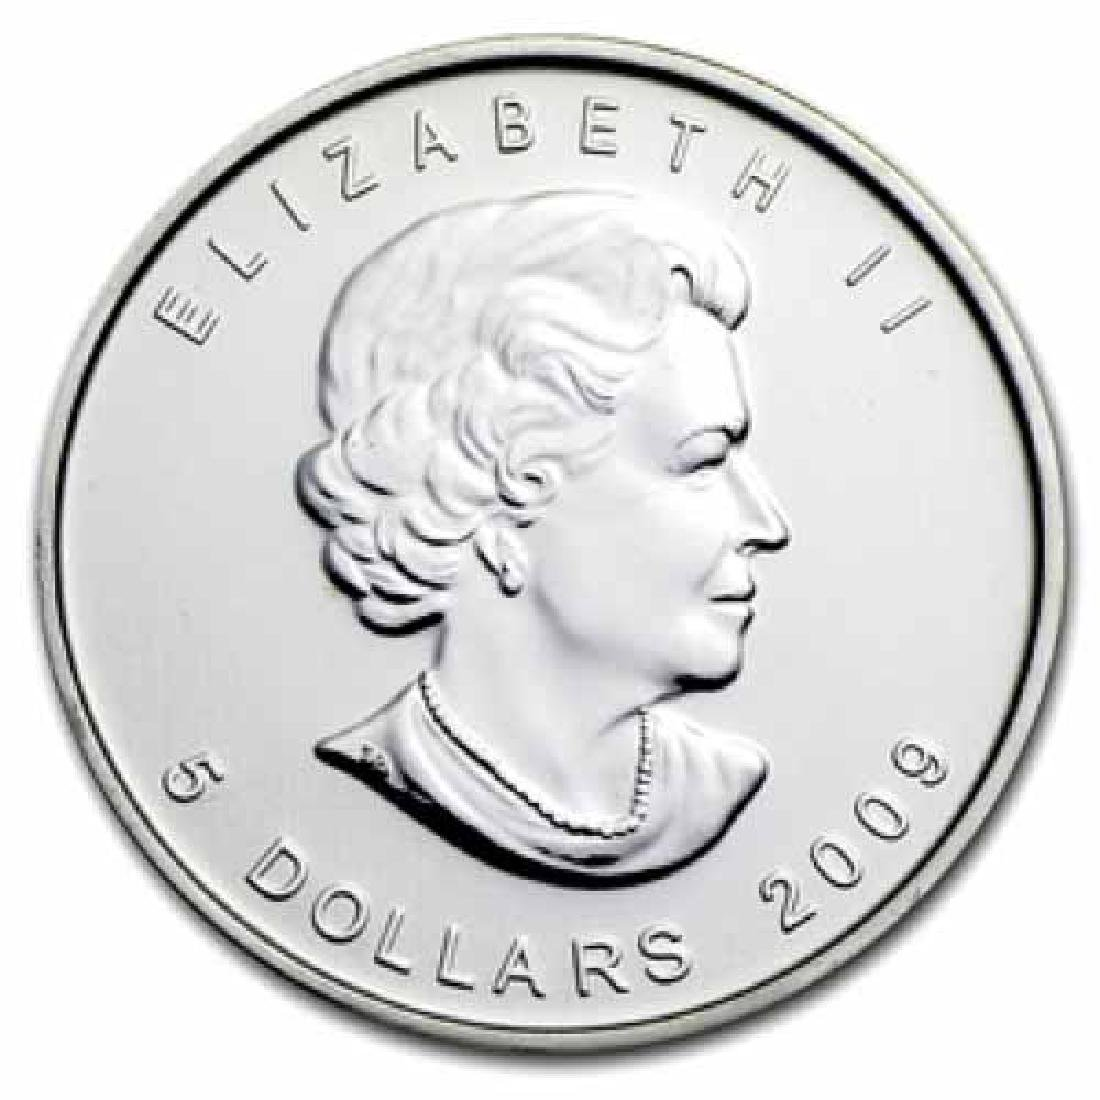 2009 Silver Maple Leaf 1 oz Uncirculated